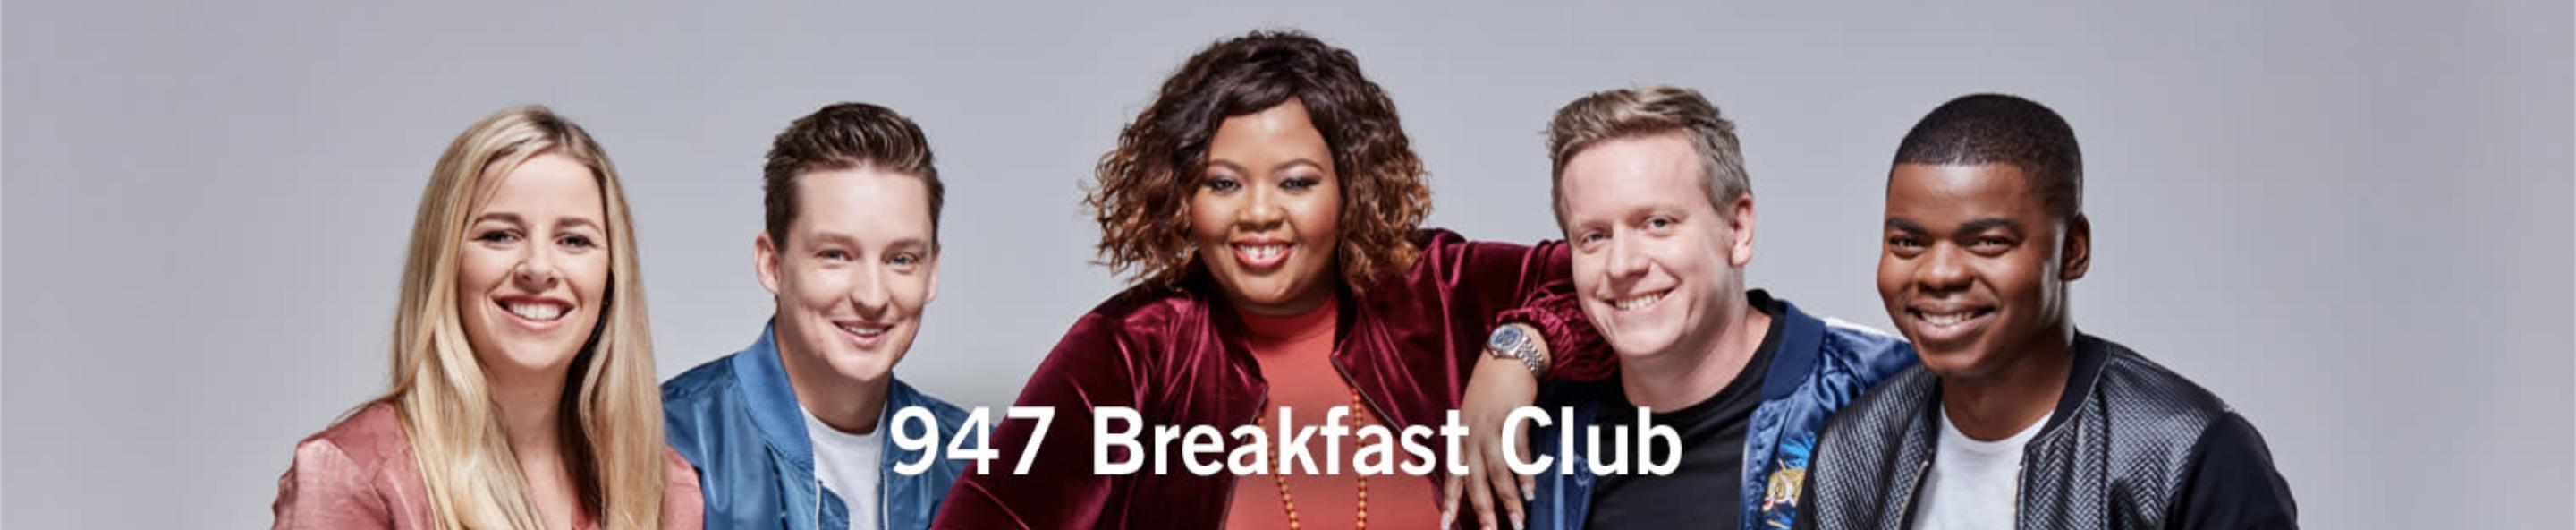 047-breakfast-club-banner